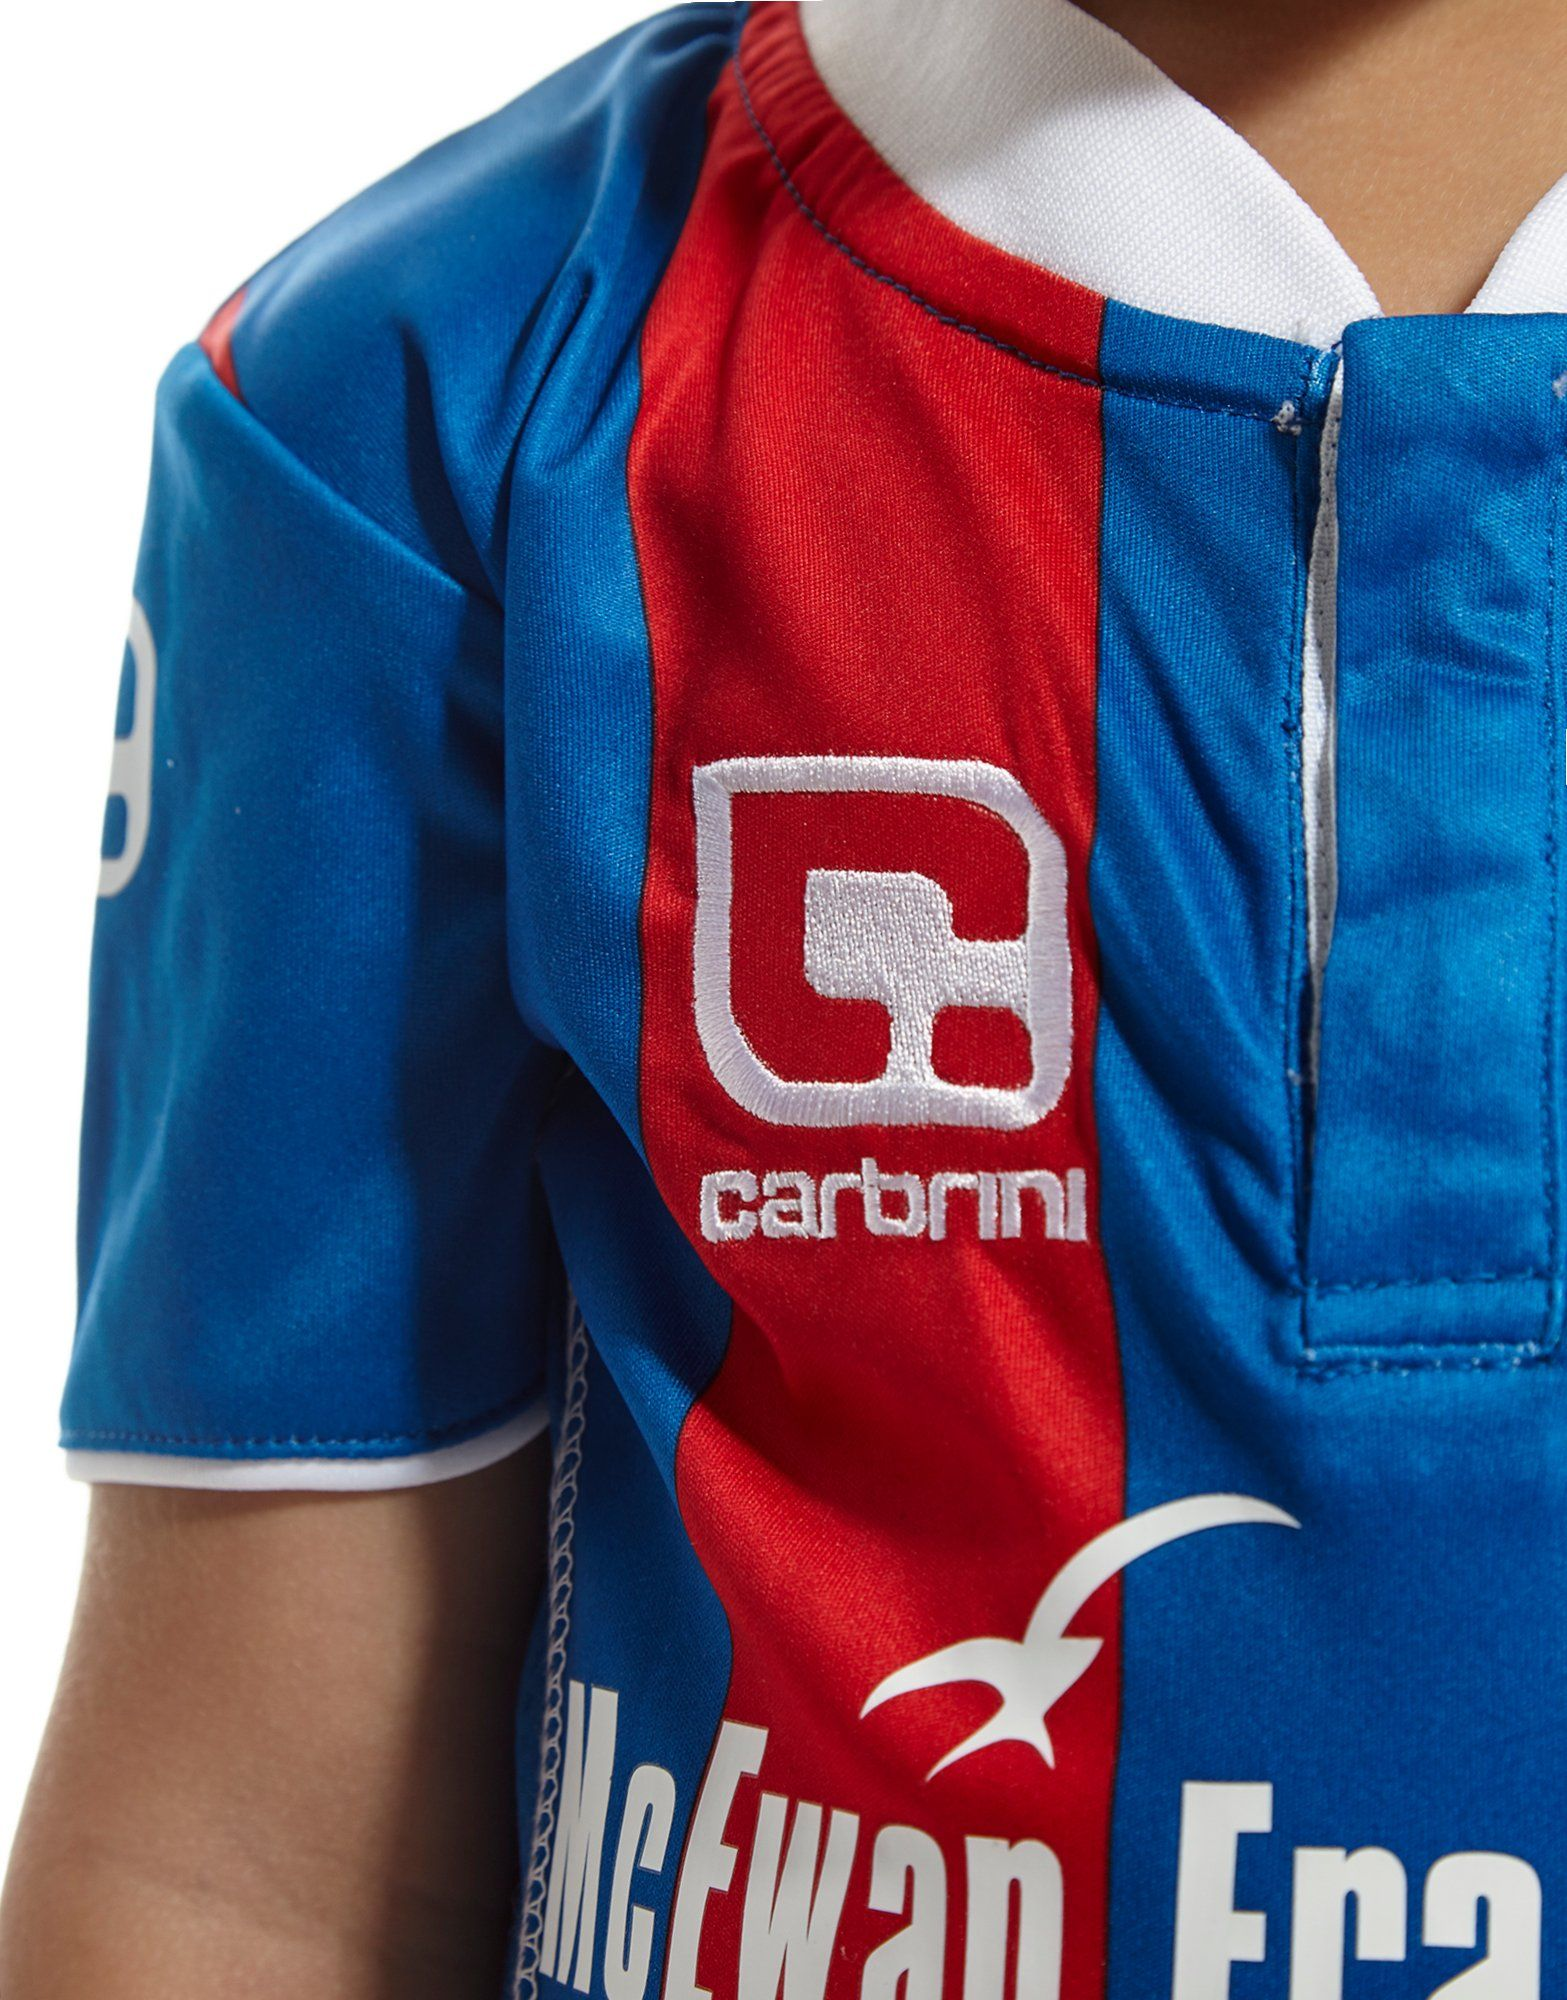 Carbrini Inverness CT 2016/17 Home Kit Infant